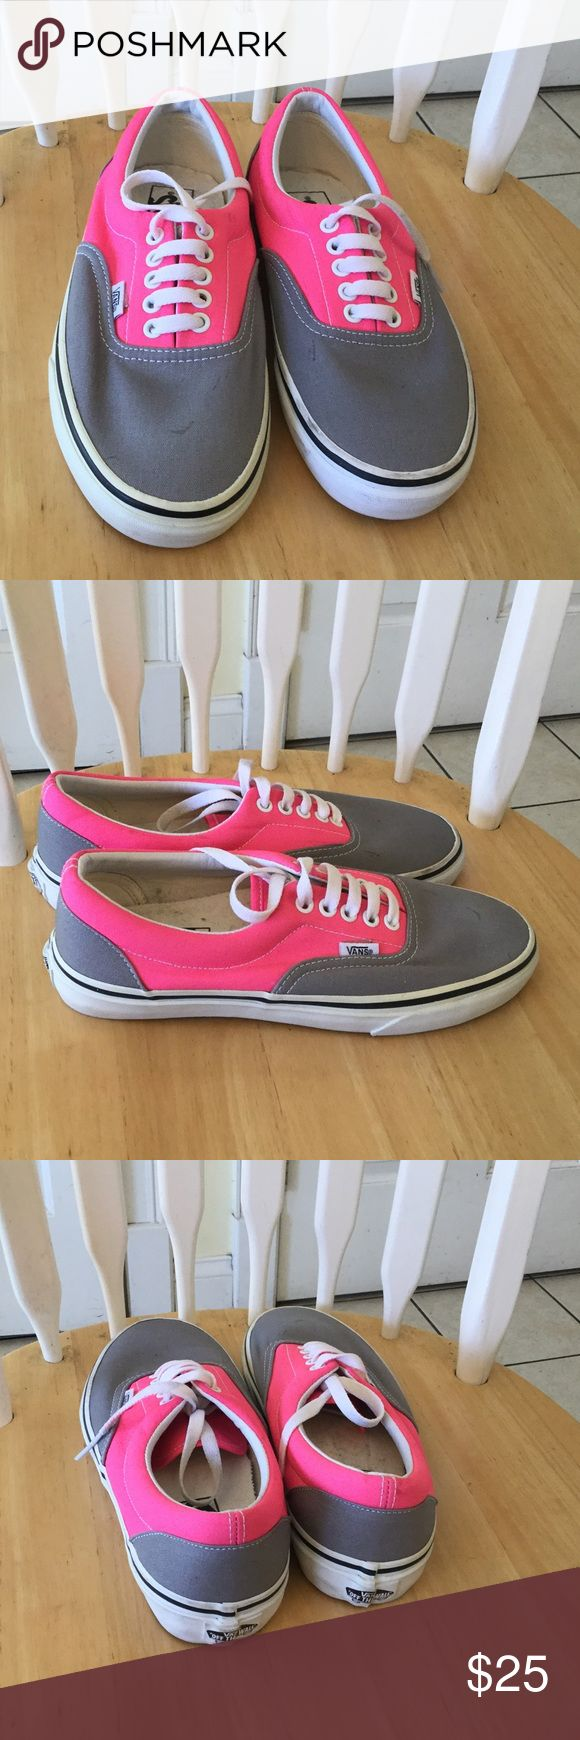 Vans shoes Never used good condition vans Shoes Sneakers